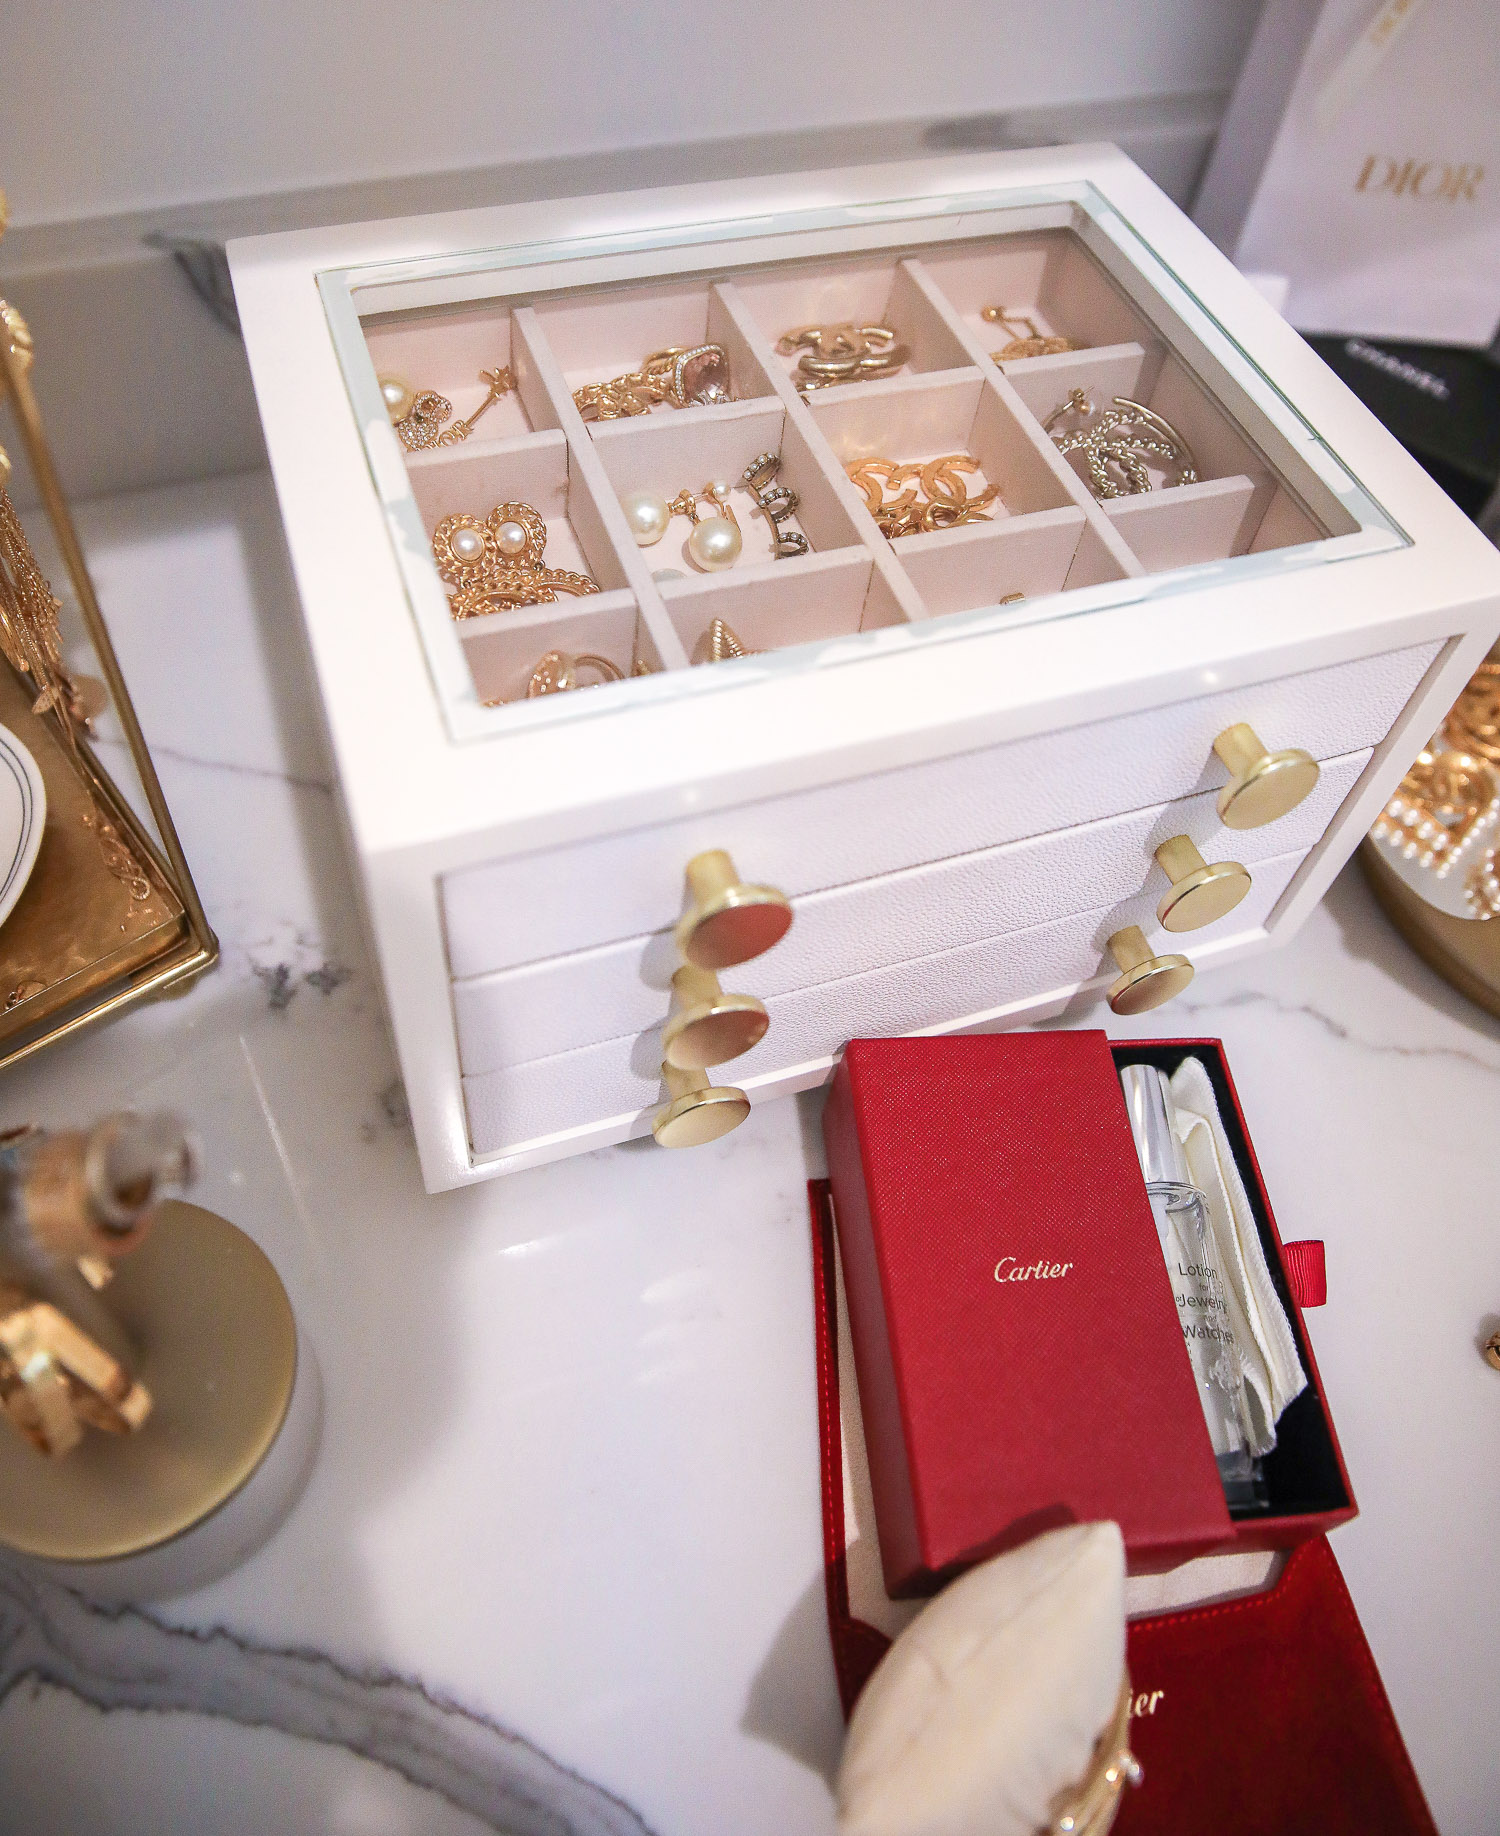 jewelry organization, how to store jewelry, Cartier jewelry cleaner | Nighttime Routine by popular US beauty blog, The Sweetest Thing: image of Cartier jewelry cleaner Chanel earrings in a Jewelry box.